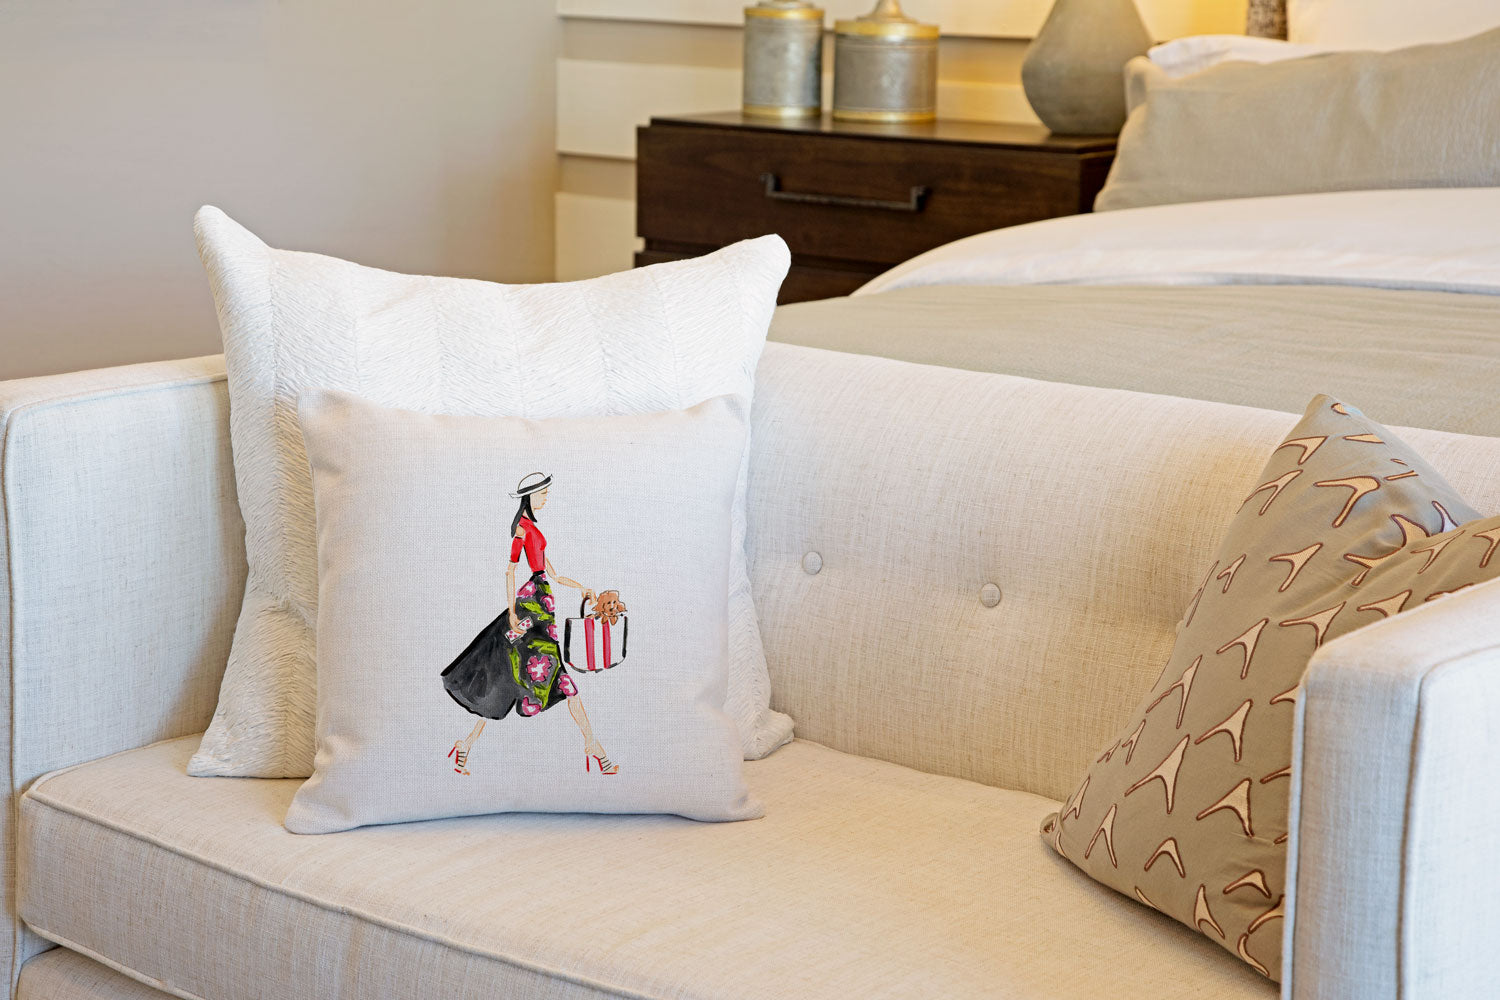 Runway Throw Pillow Cover - Fashion Illustrations Throw Pillow Cover Collection